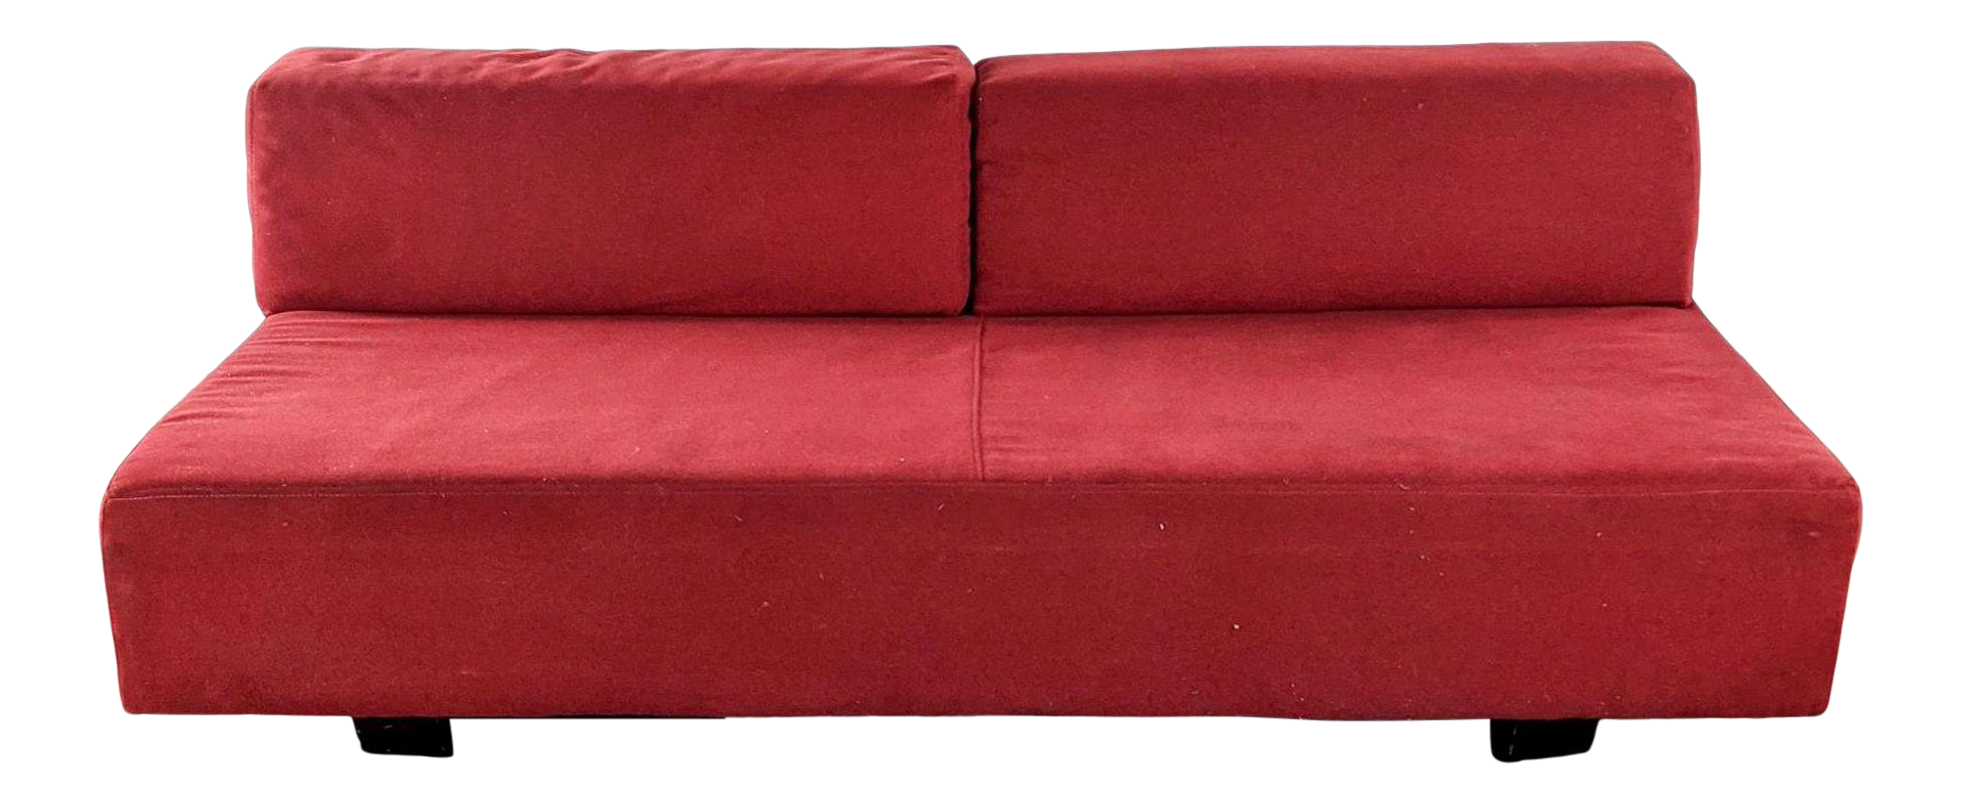 West Elm Red Upholstered Sofa Chairish